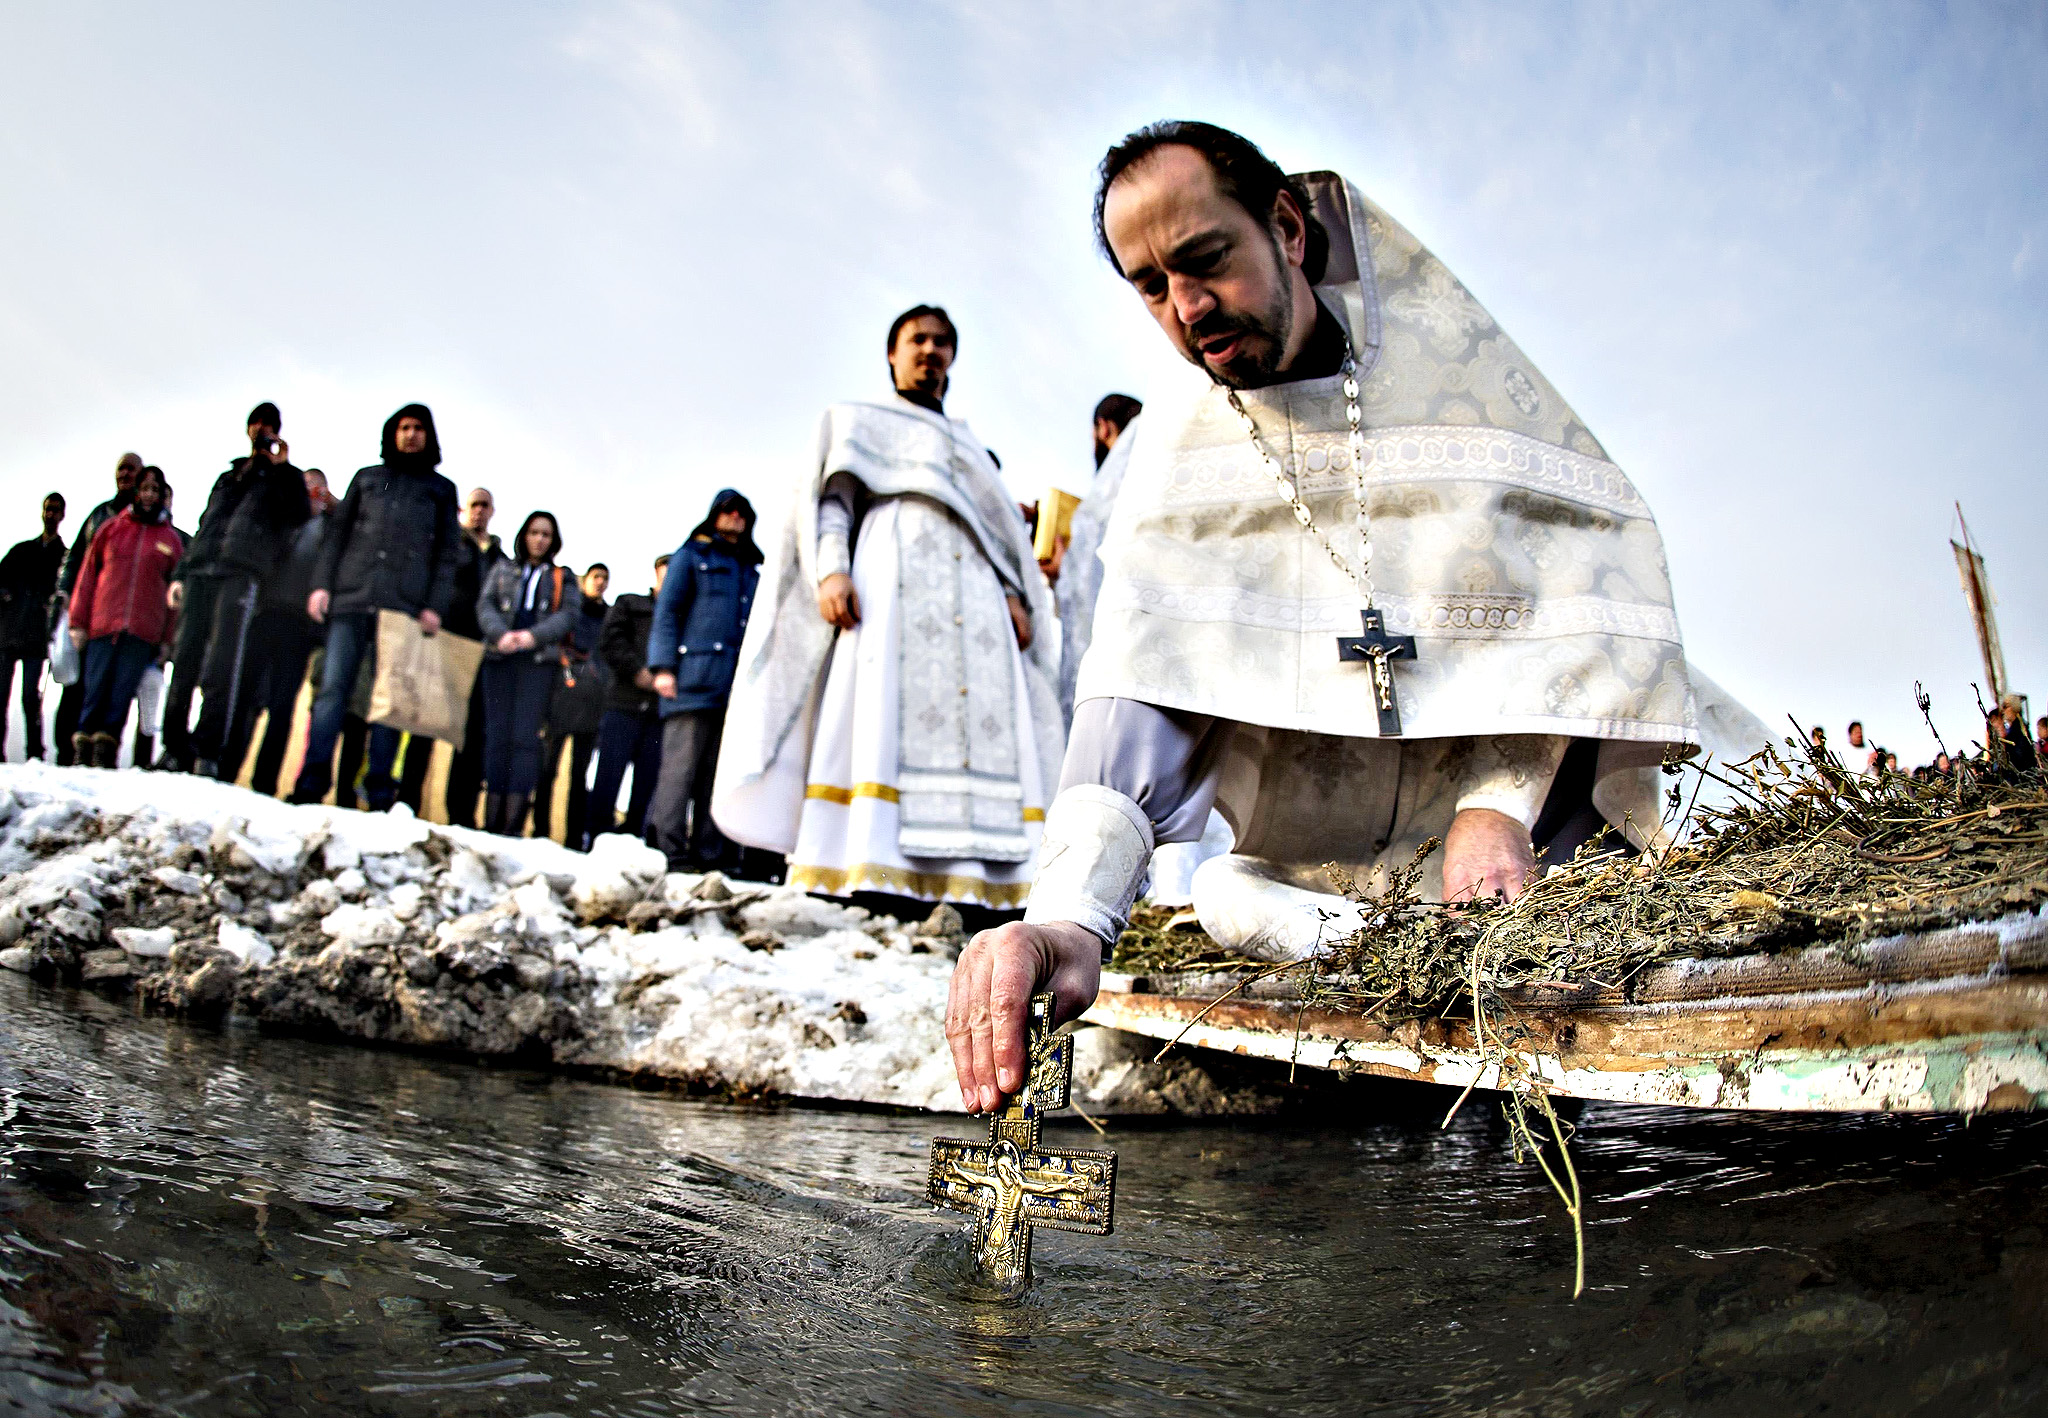 An Orthodox priest immerses a cross in the Bolshaya Almatinka river to bless its water during an Epiphany ceremony in Almaty January 19, 2015. Orthodox believers abiding by the Julian calendar mark Epiphany on January 19 by immersing themselves in icy waters regardless of the weather.